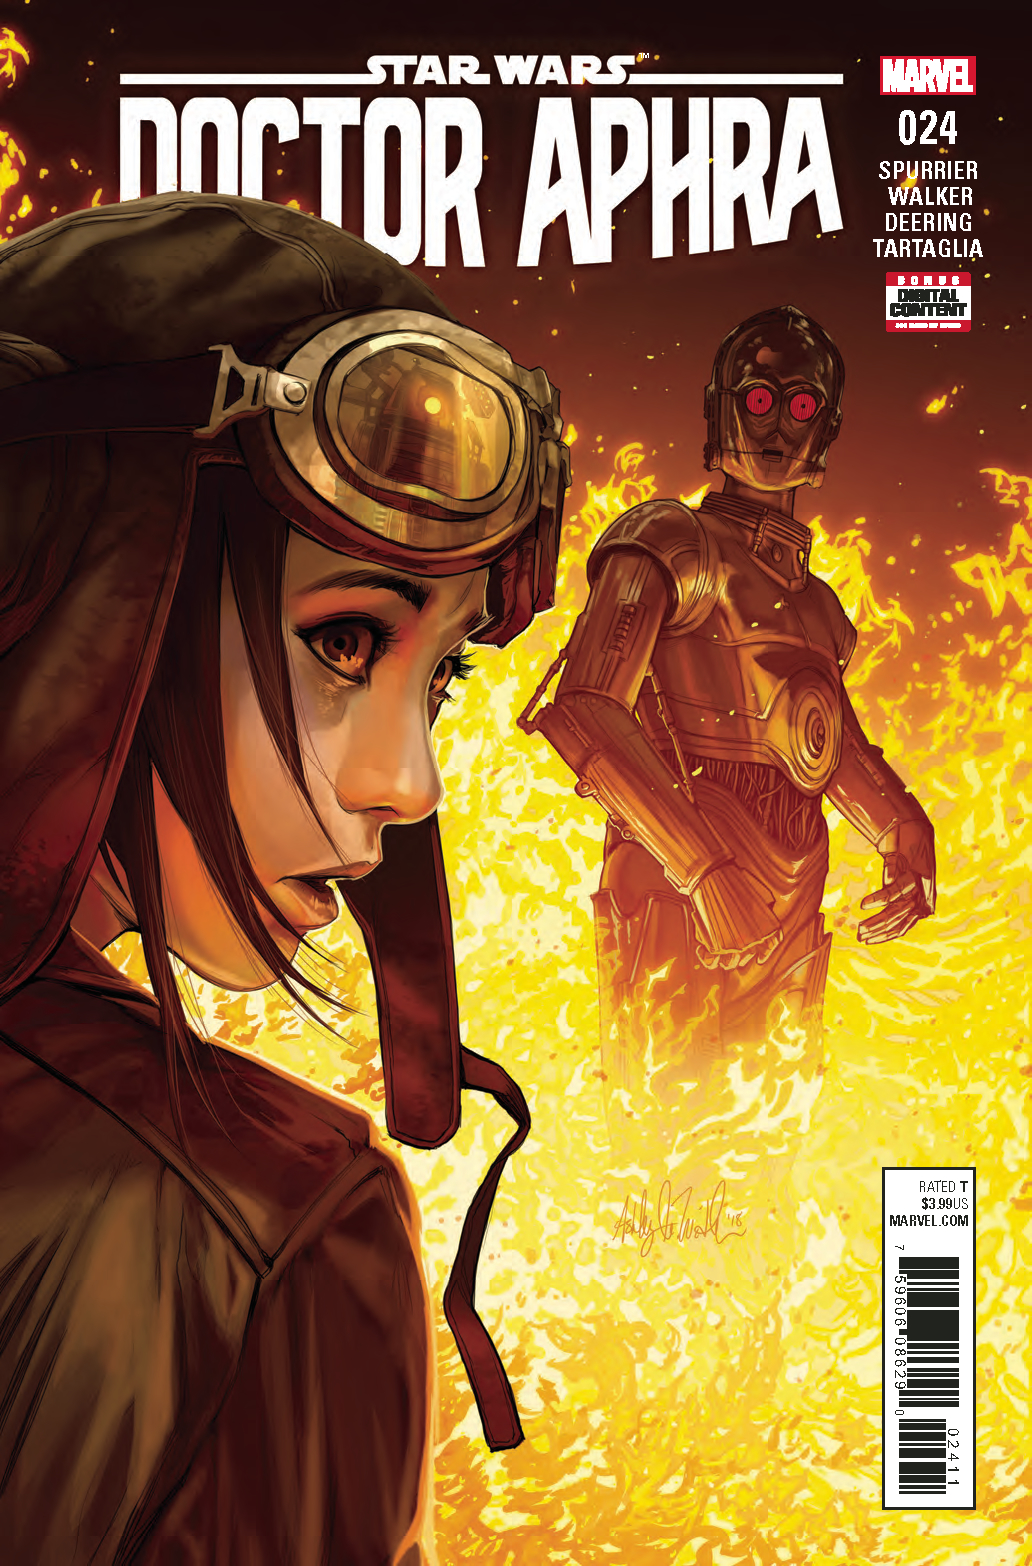 STAR WARS DOCTOR APHRA #24